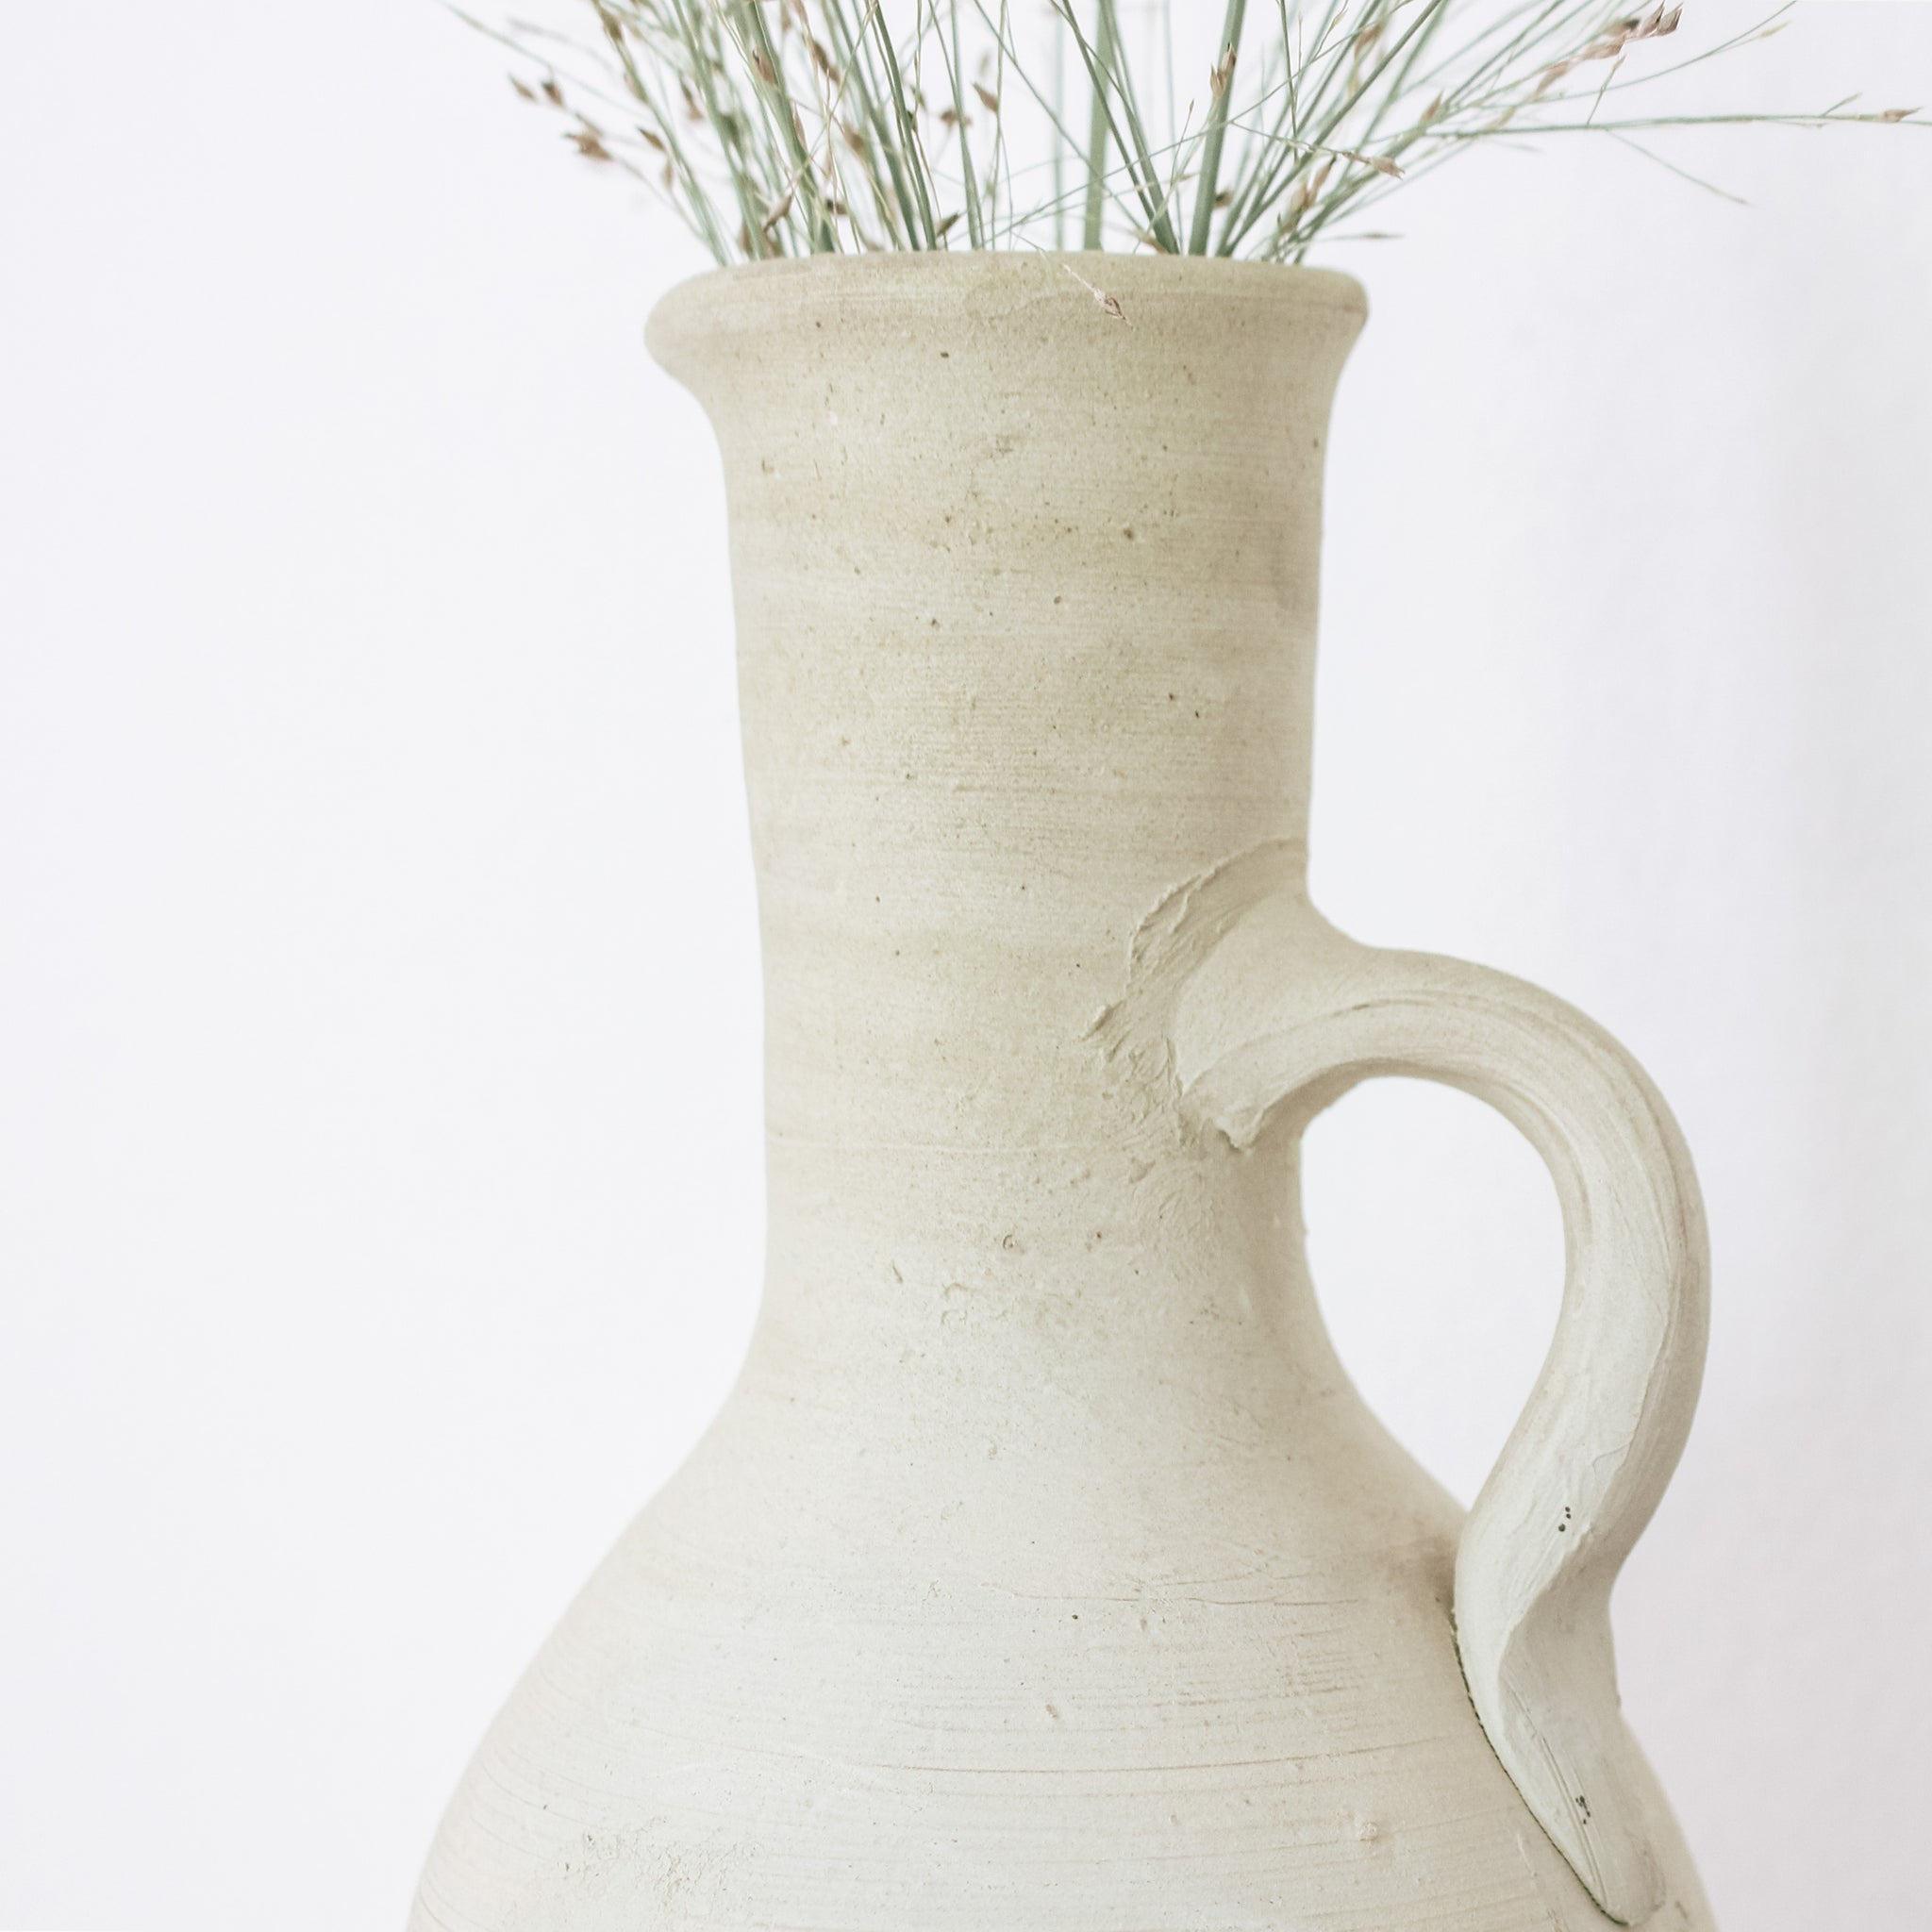 Primitive Style Decorative Pitcher